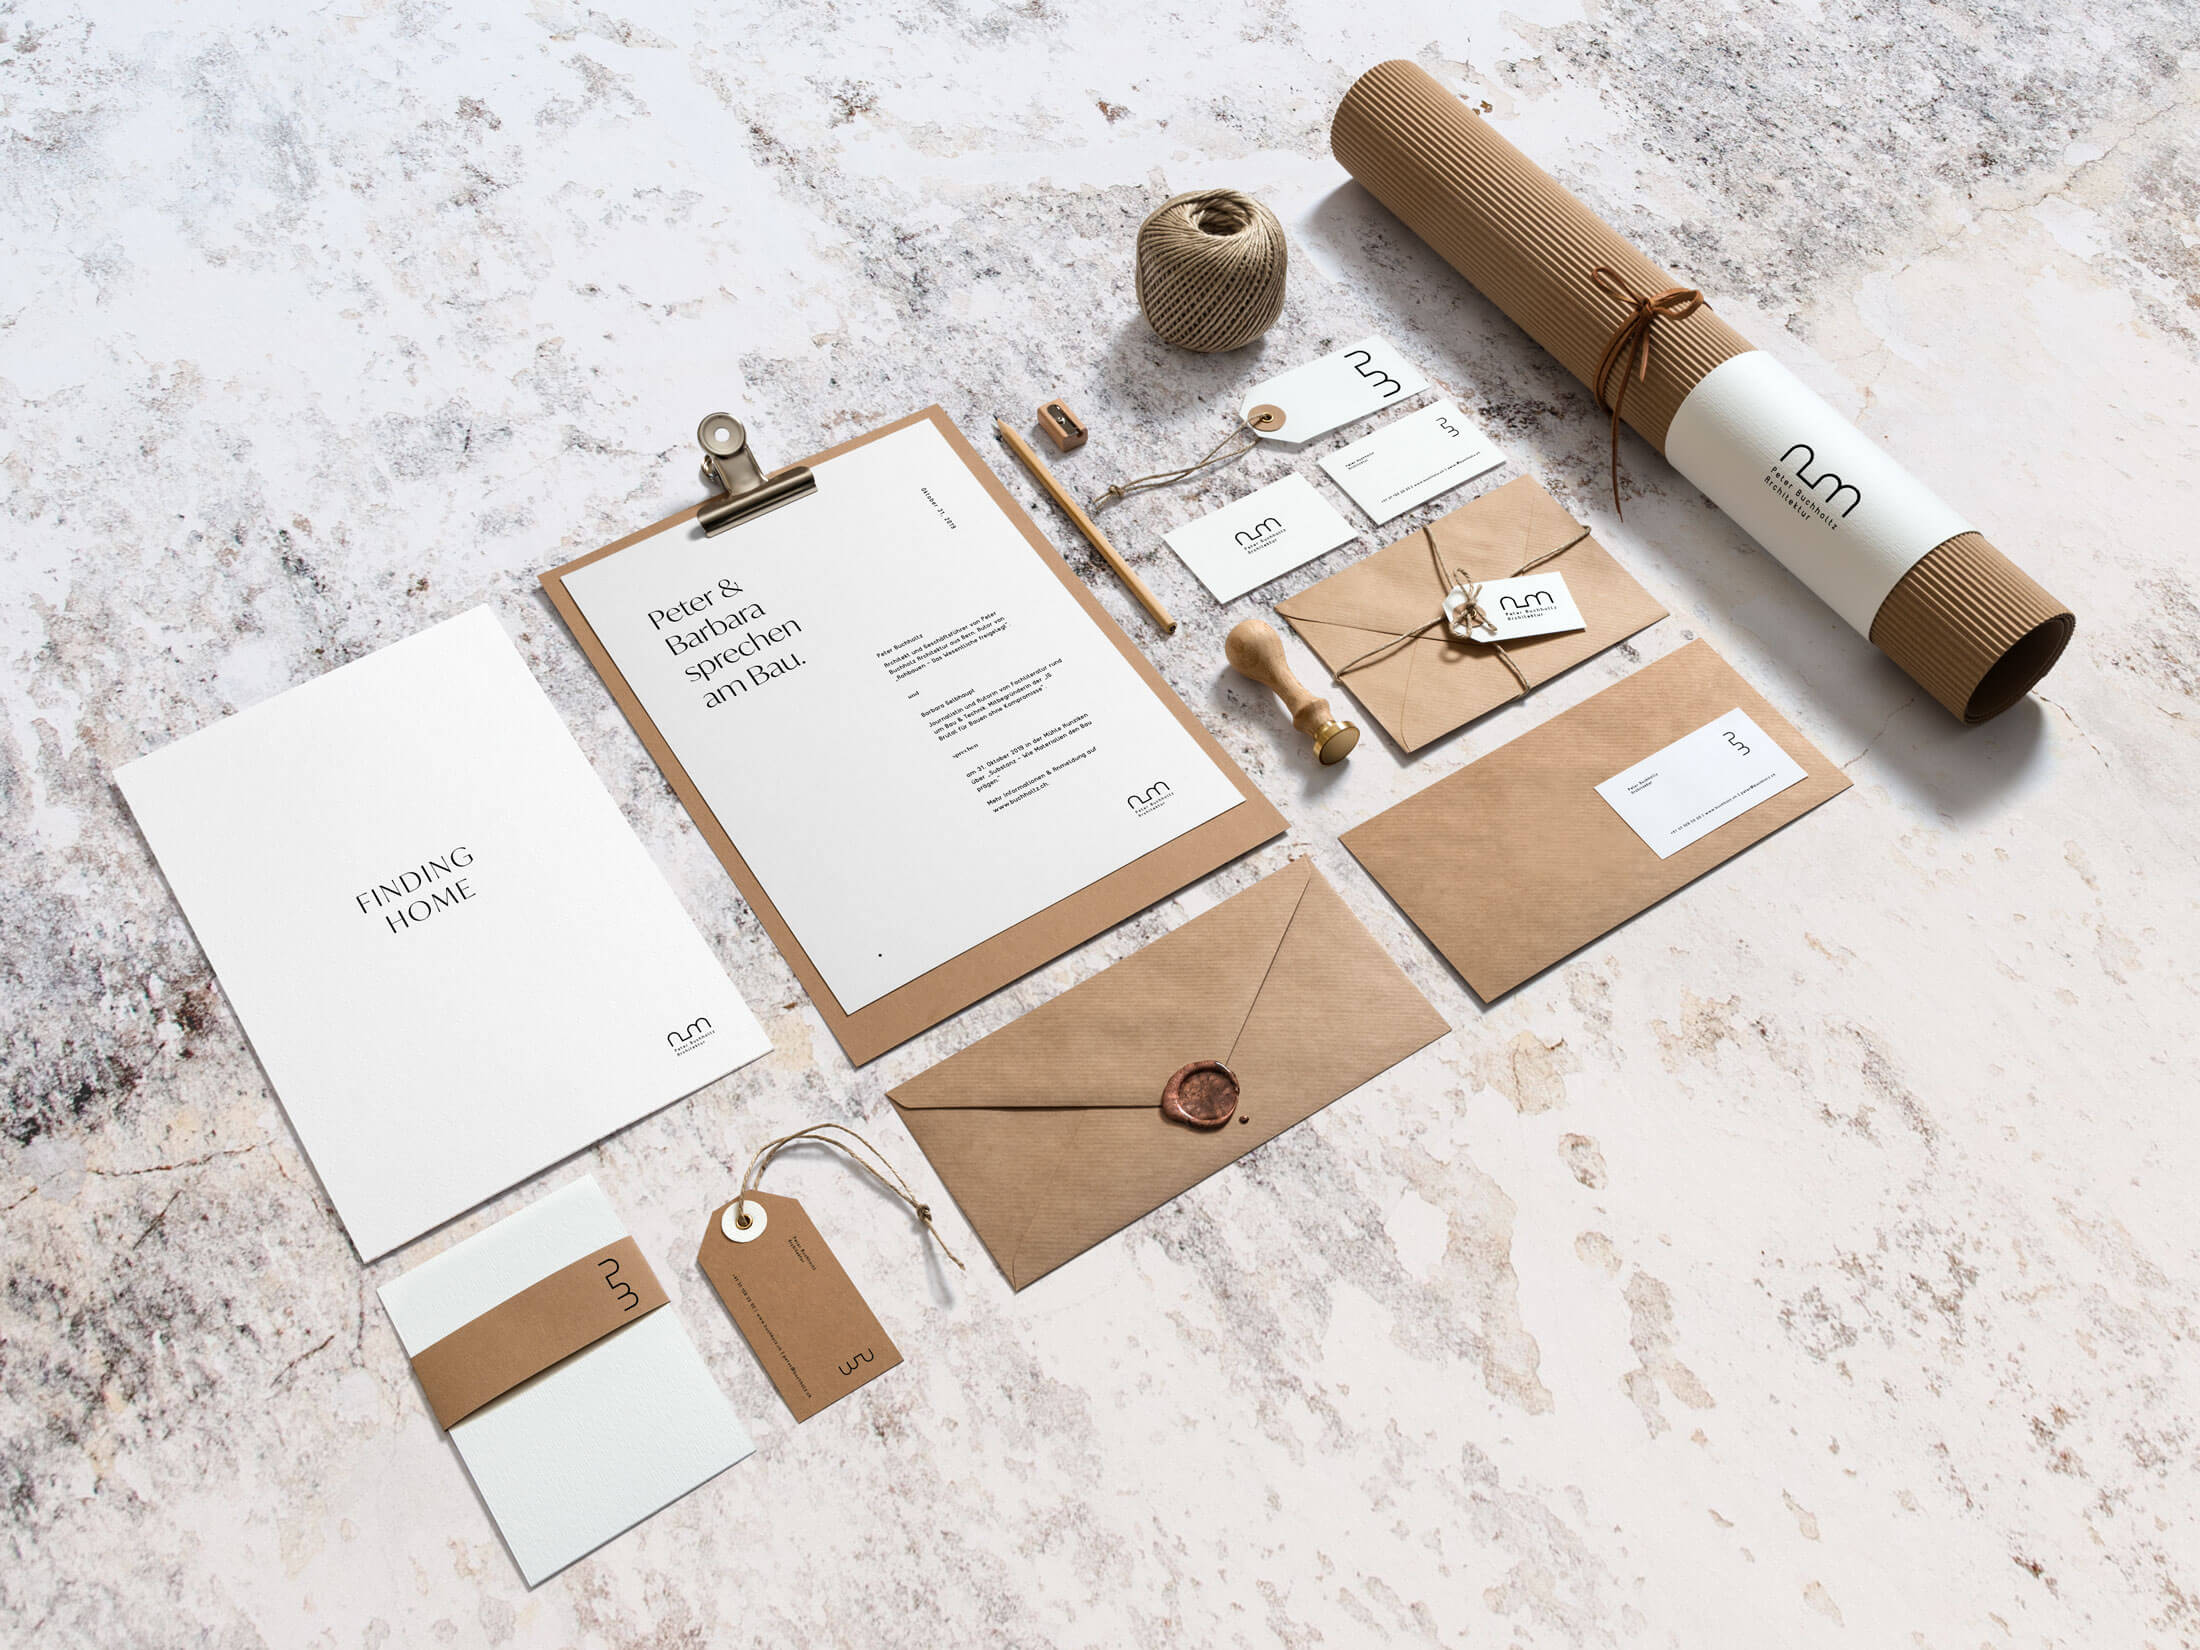 Branding and design of print for Swiss architect in Bern